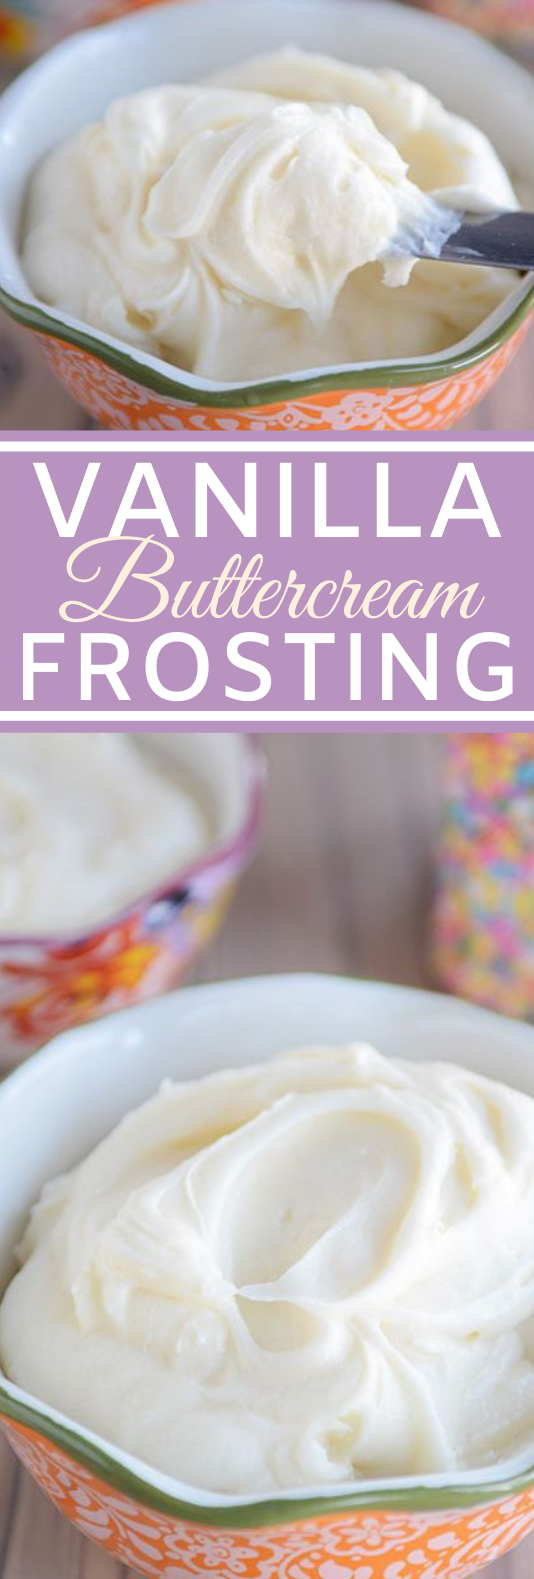 The Best Vanilla Buttercream Frosting #cookies #cake #frosting #desserts #baking